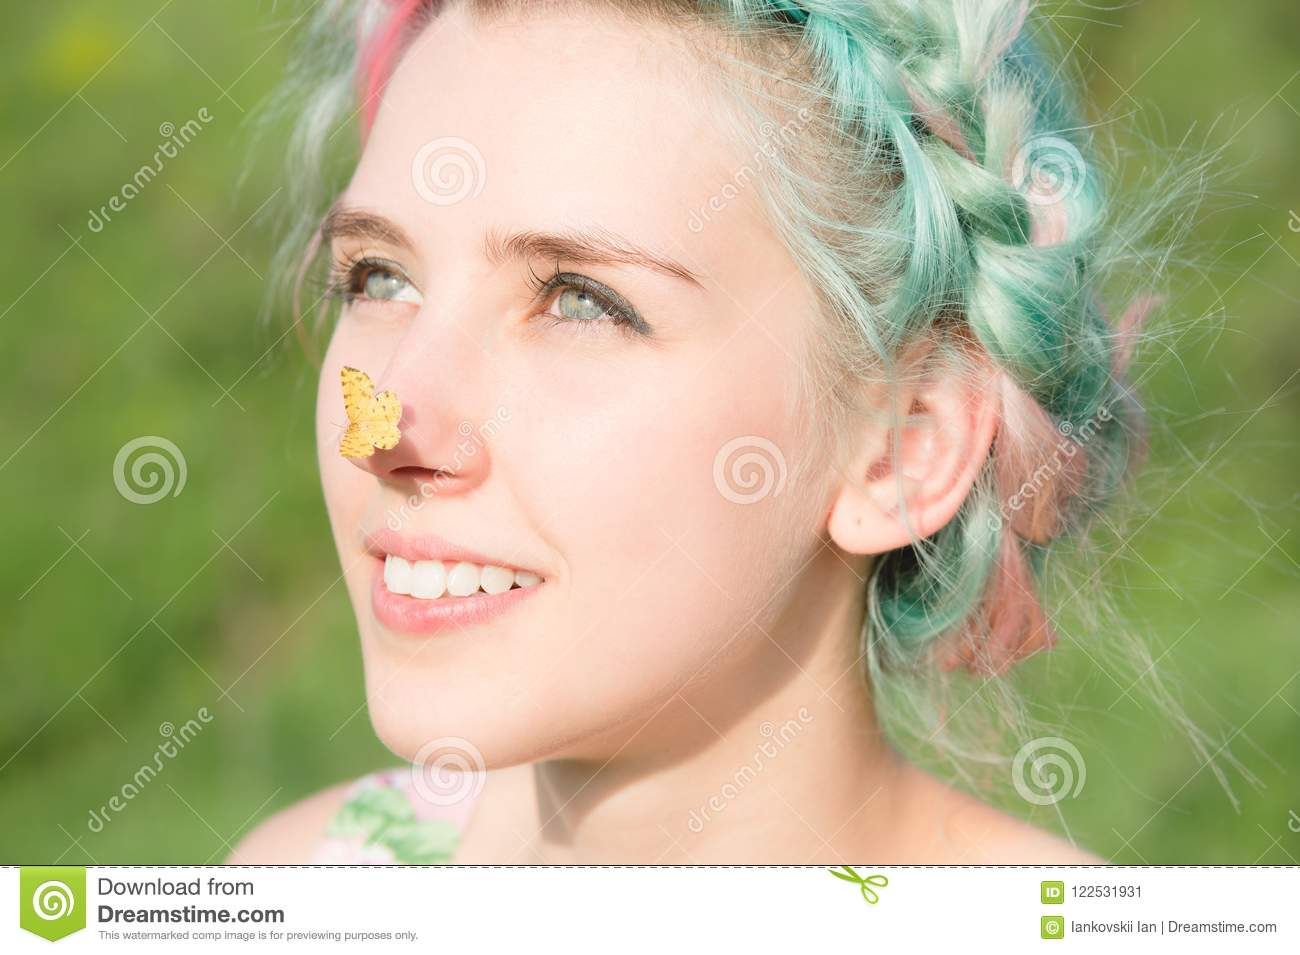 yellow butterfly sitting on the nose cute young girl on nature